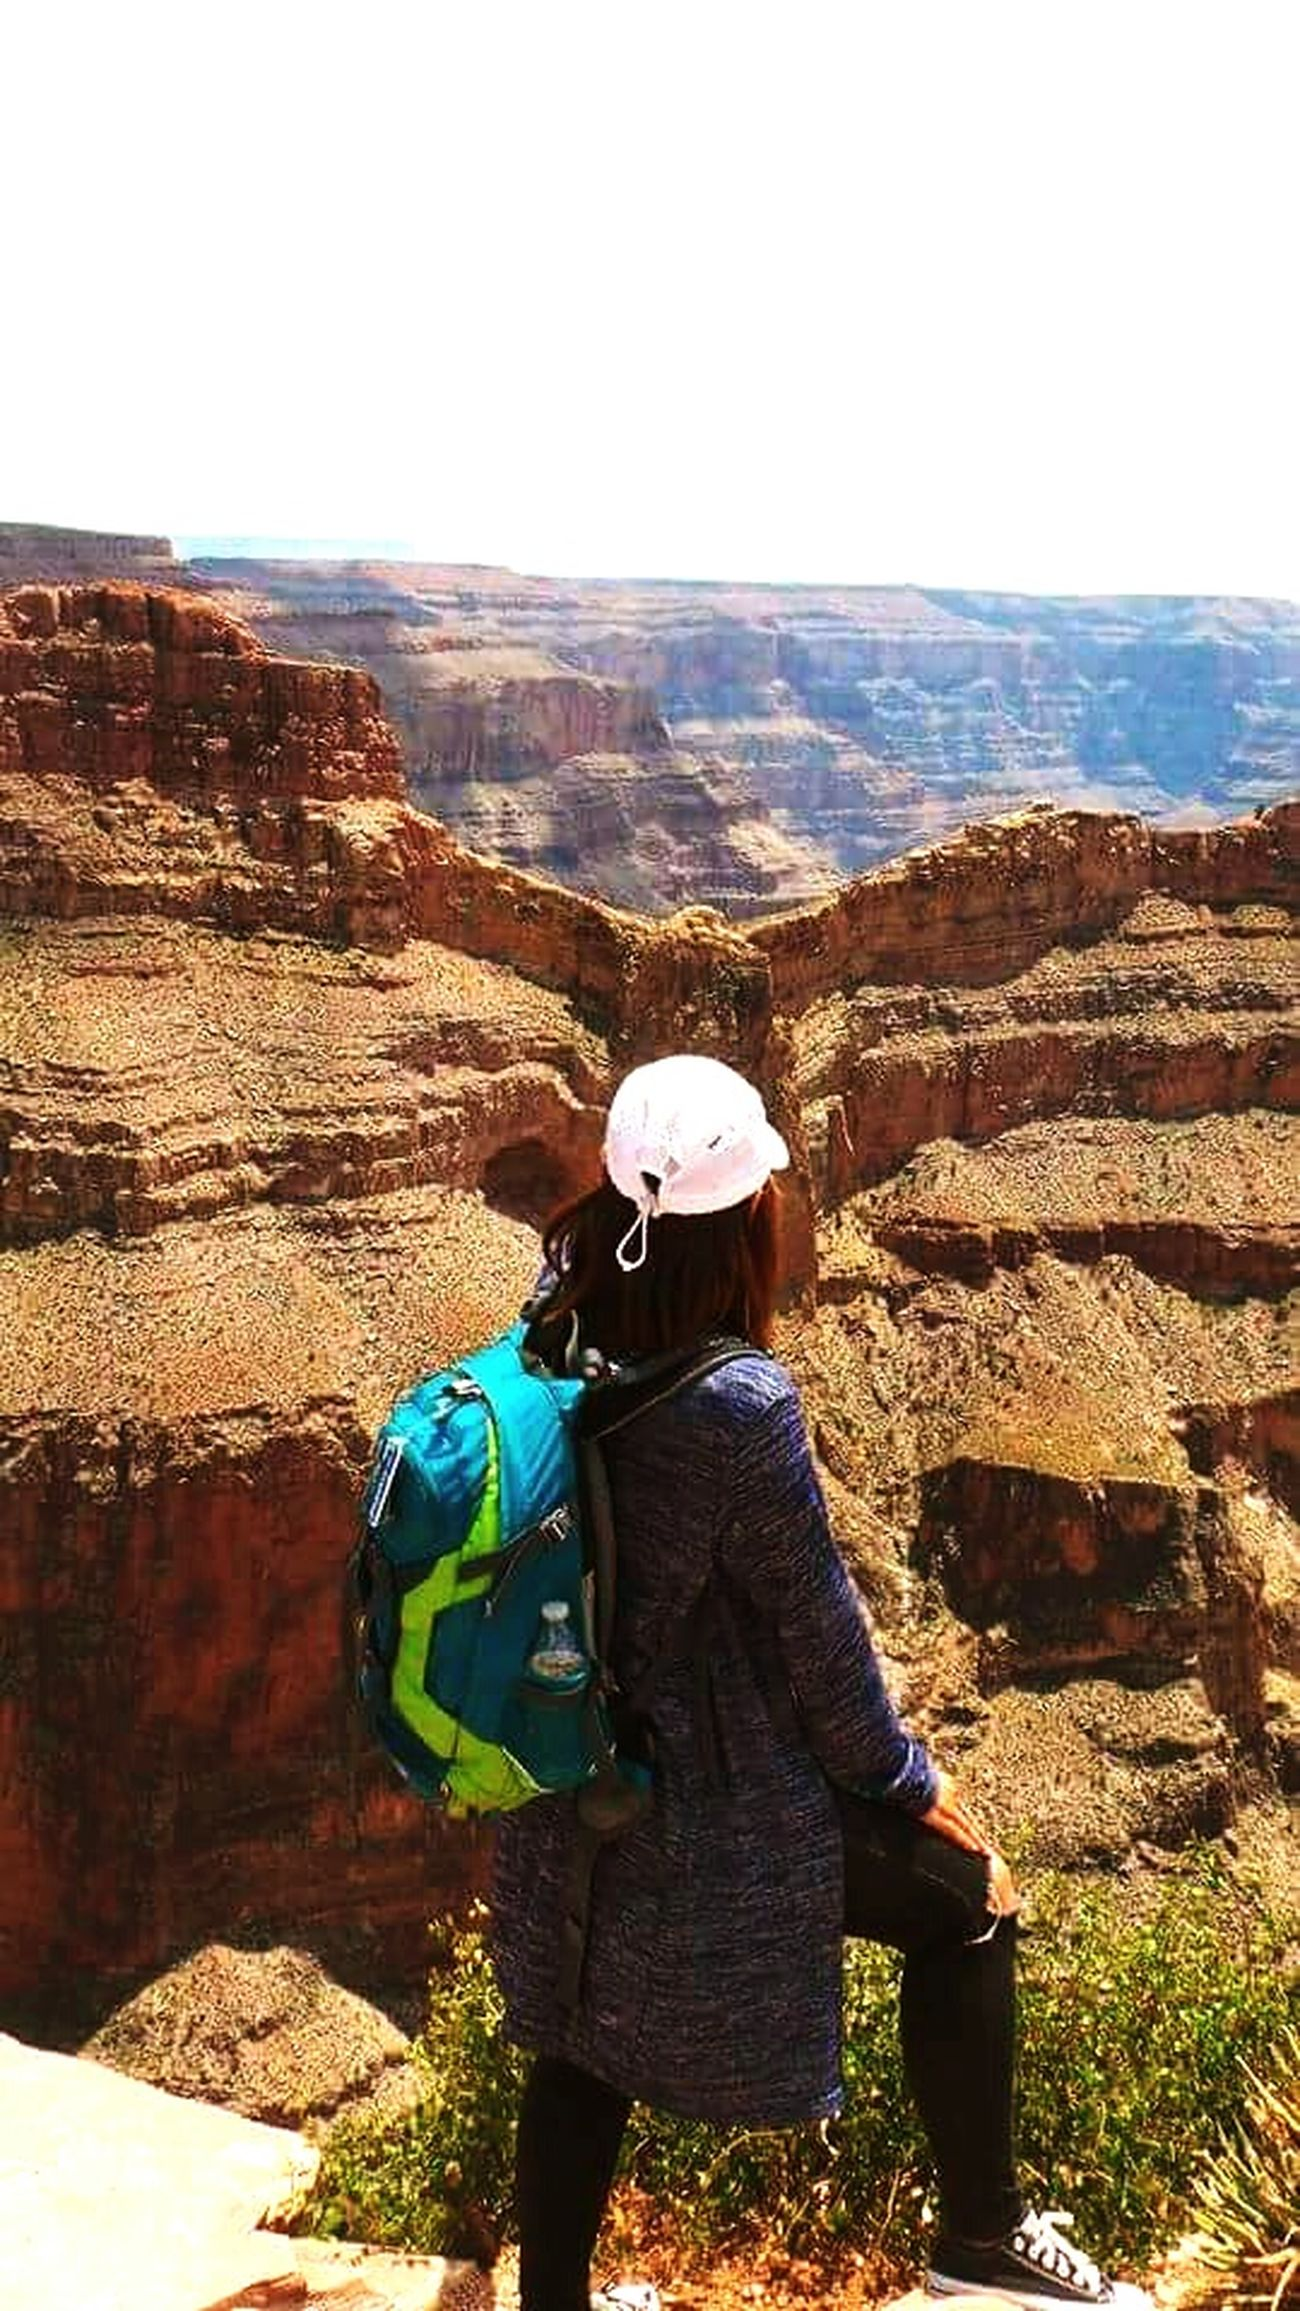 When this girl's dream came true 😭 Nature Beauty In Nature Leisure Activity Outdoors Dreamscapes & Memories Dreamer's Vision Grand Canyon Arizona Landscape